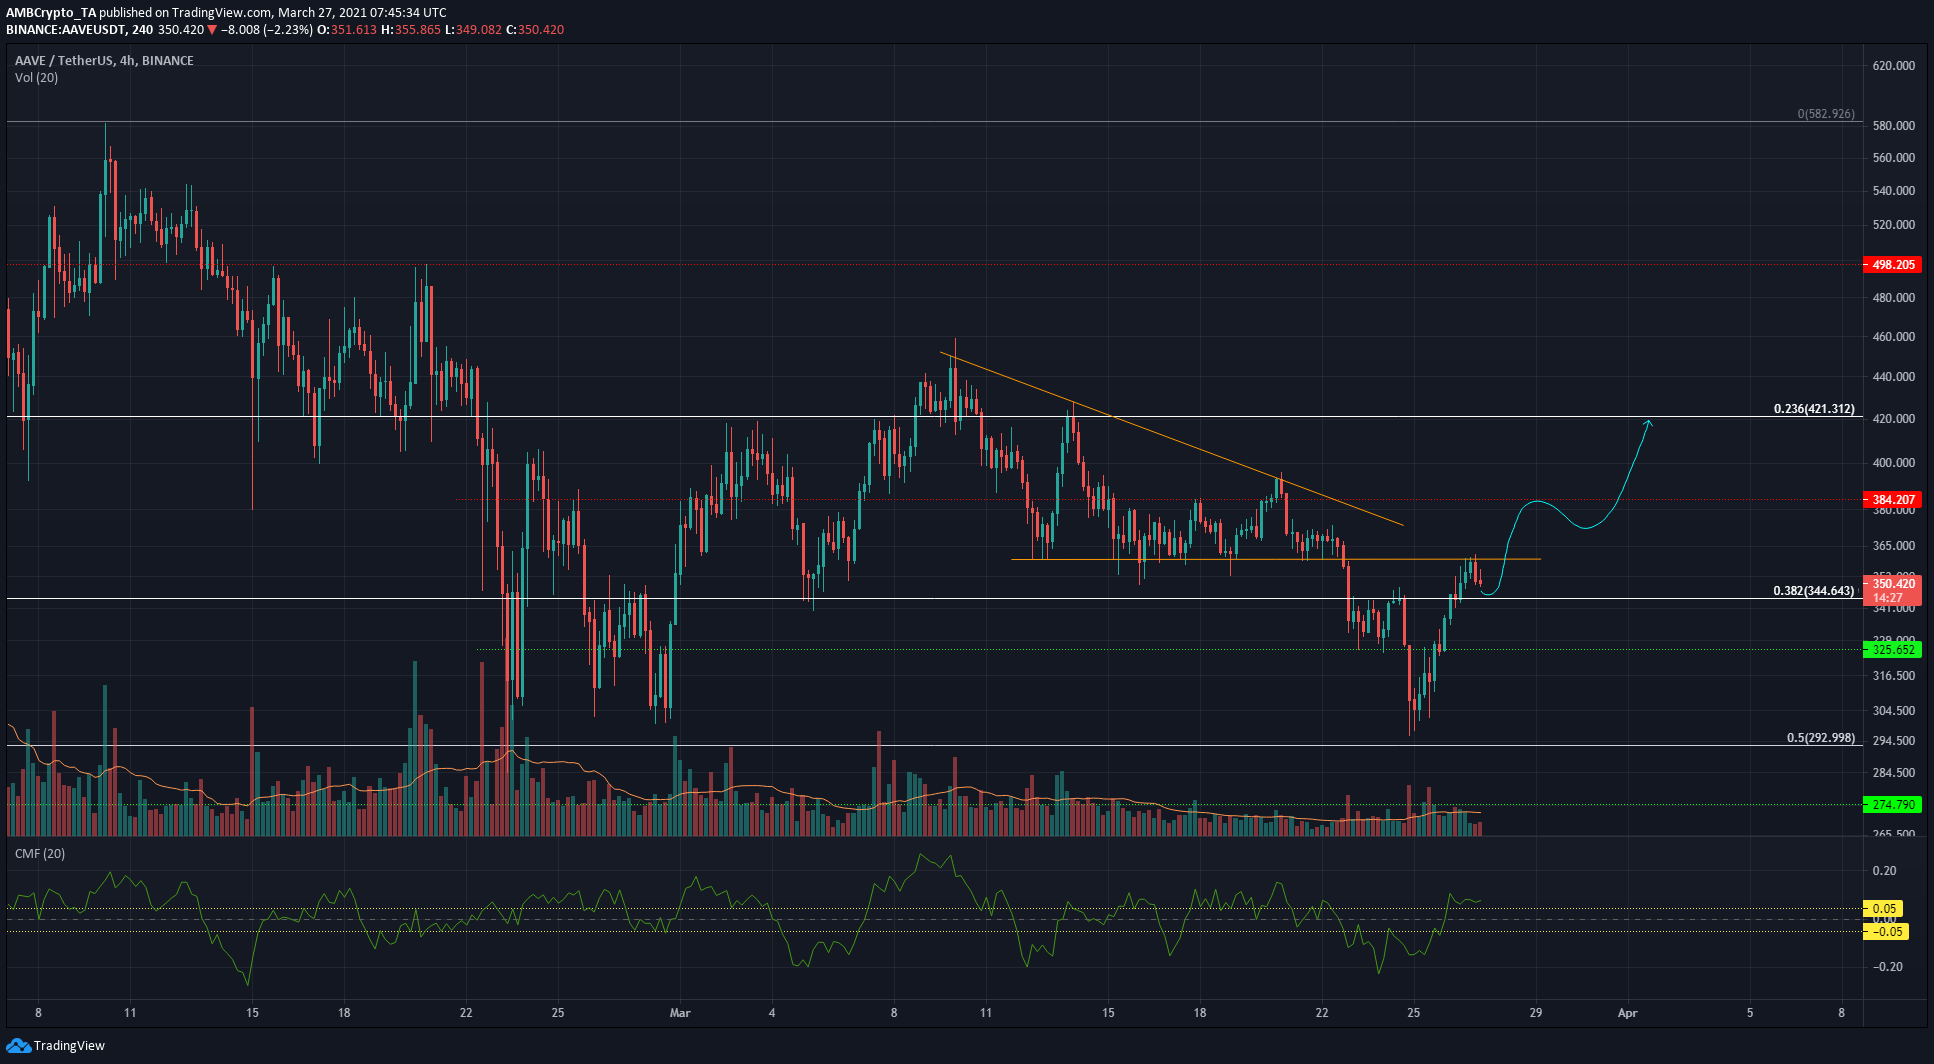 Cosmos, EOS, Aave Price Analysis: 27 March